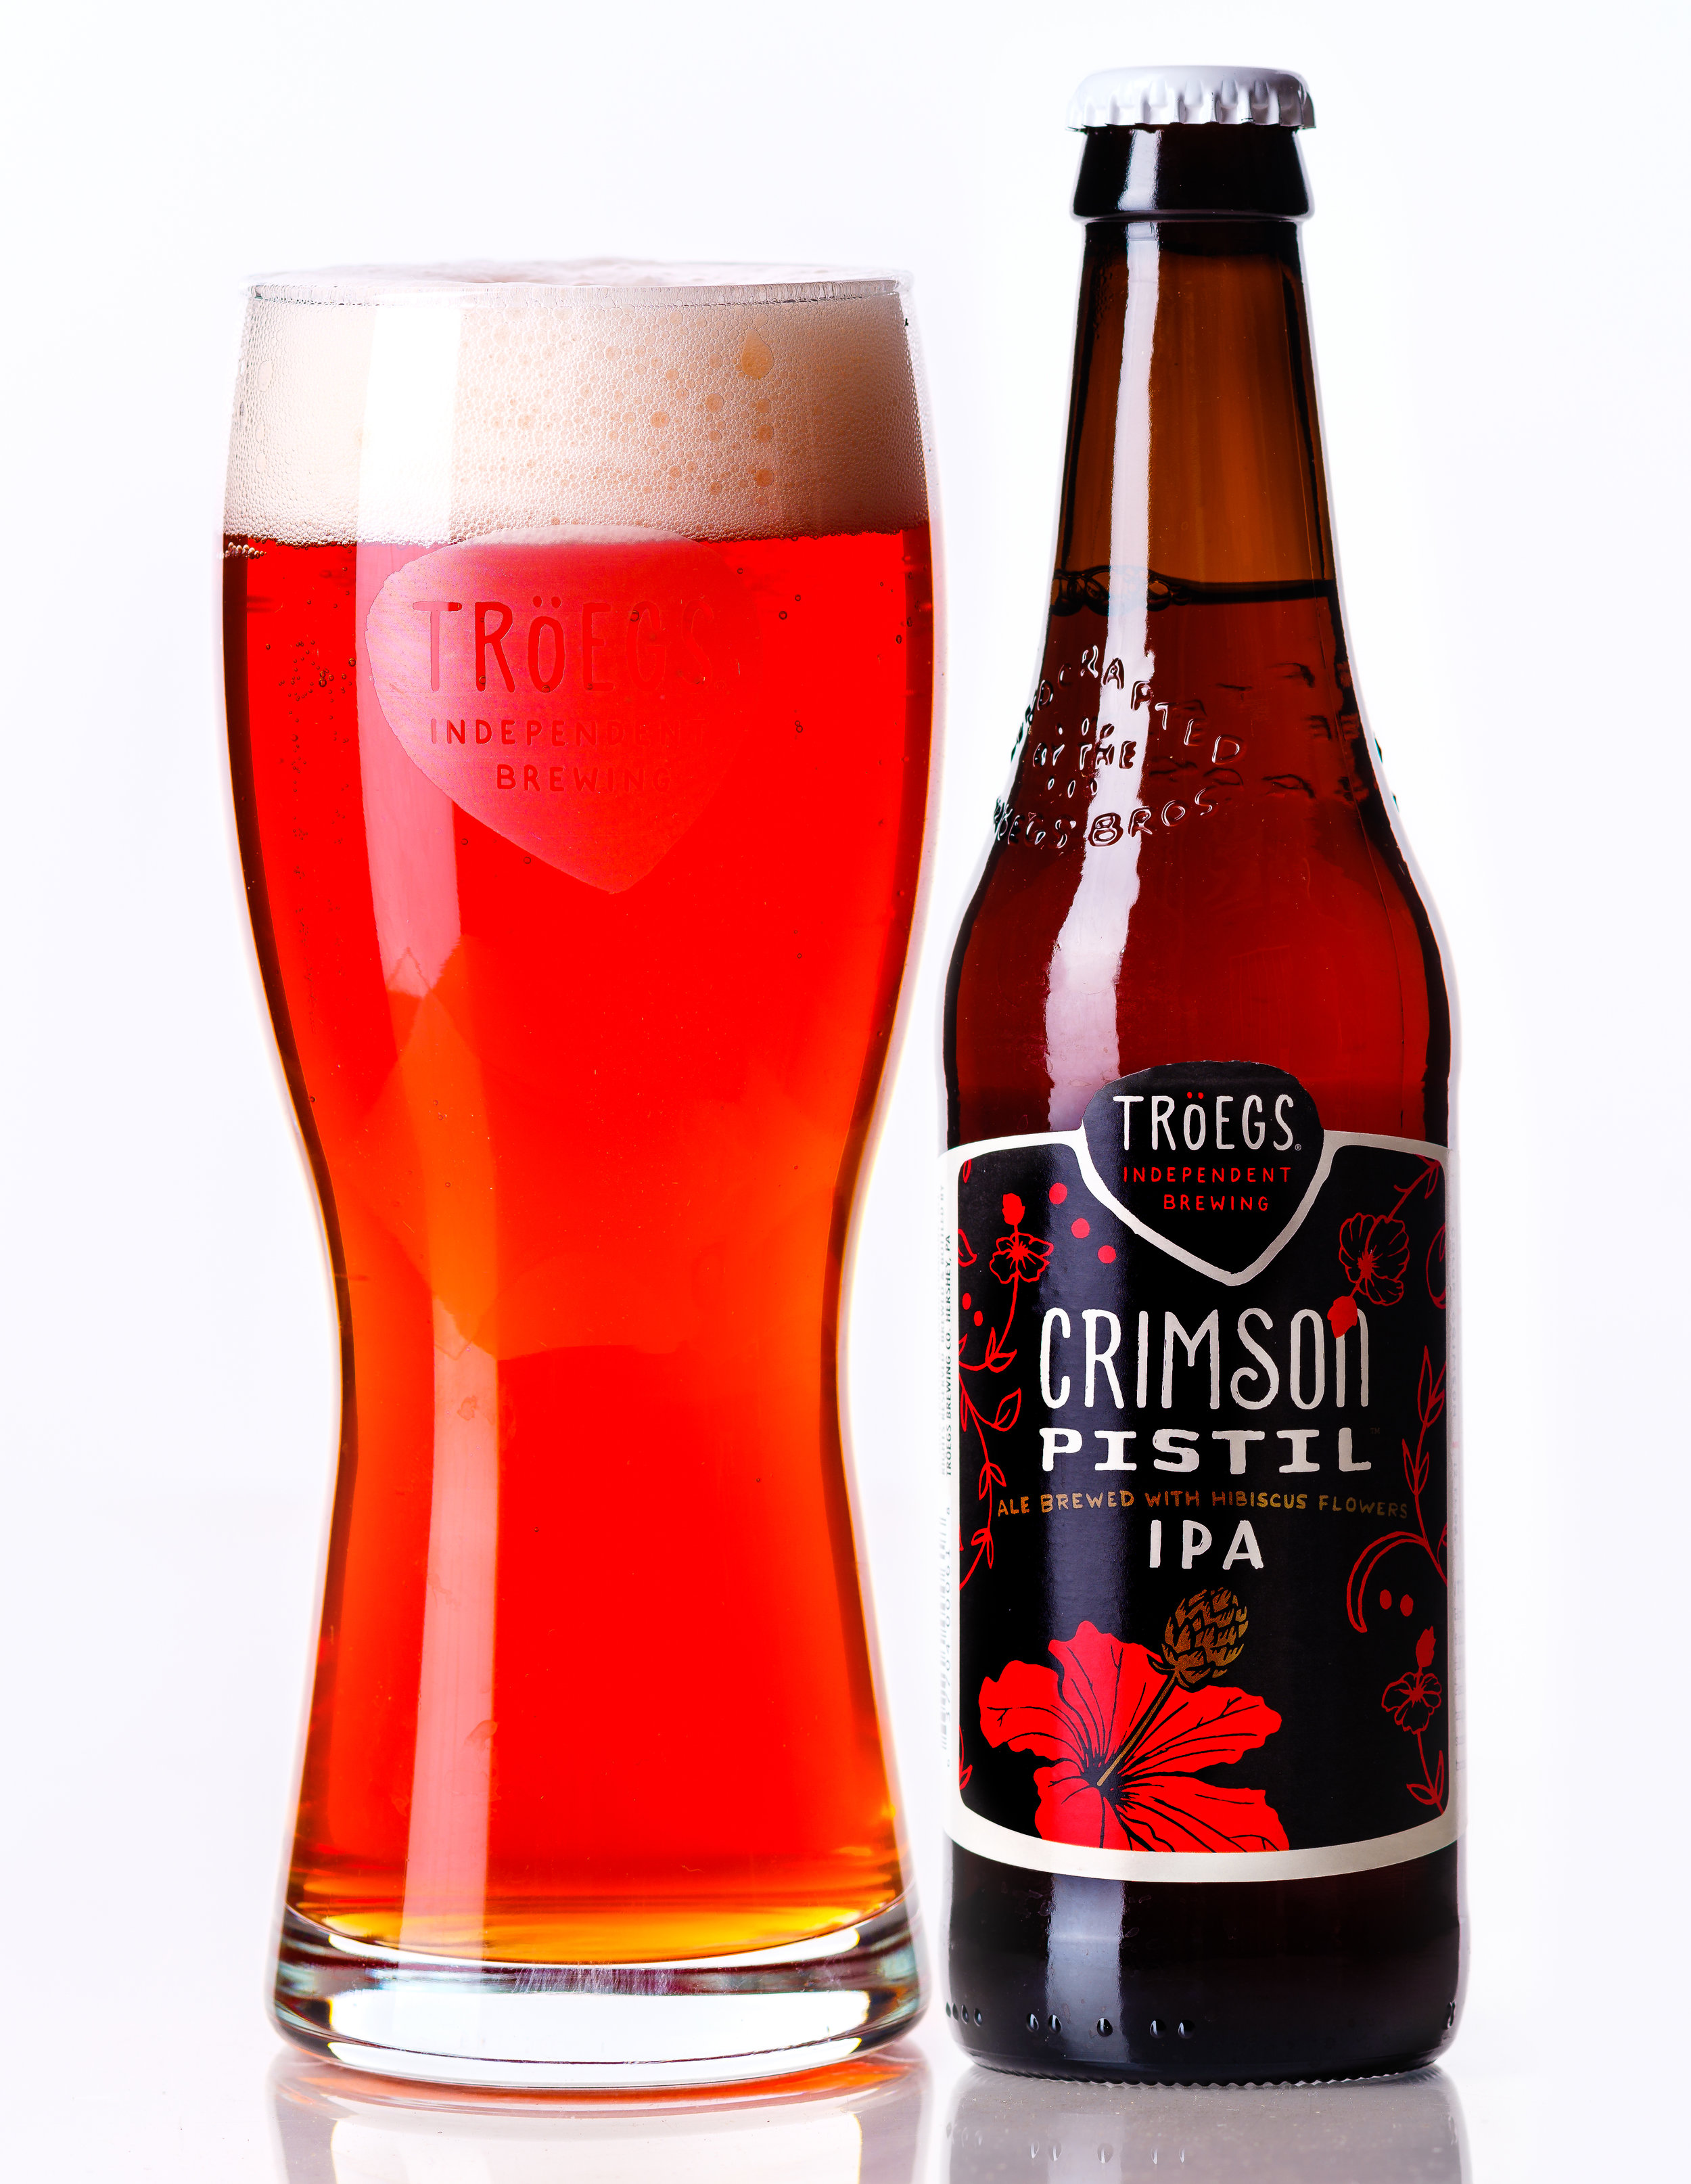 Crimson Pistil Pour and Bottle-001.jpg